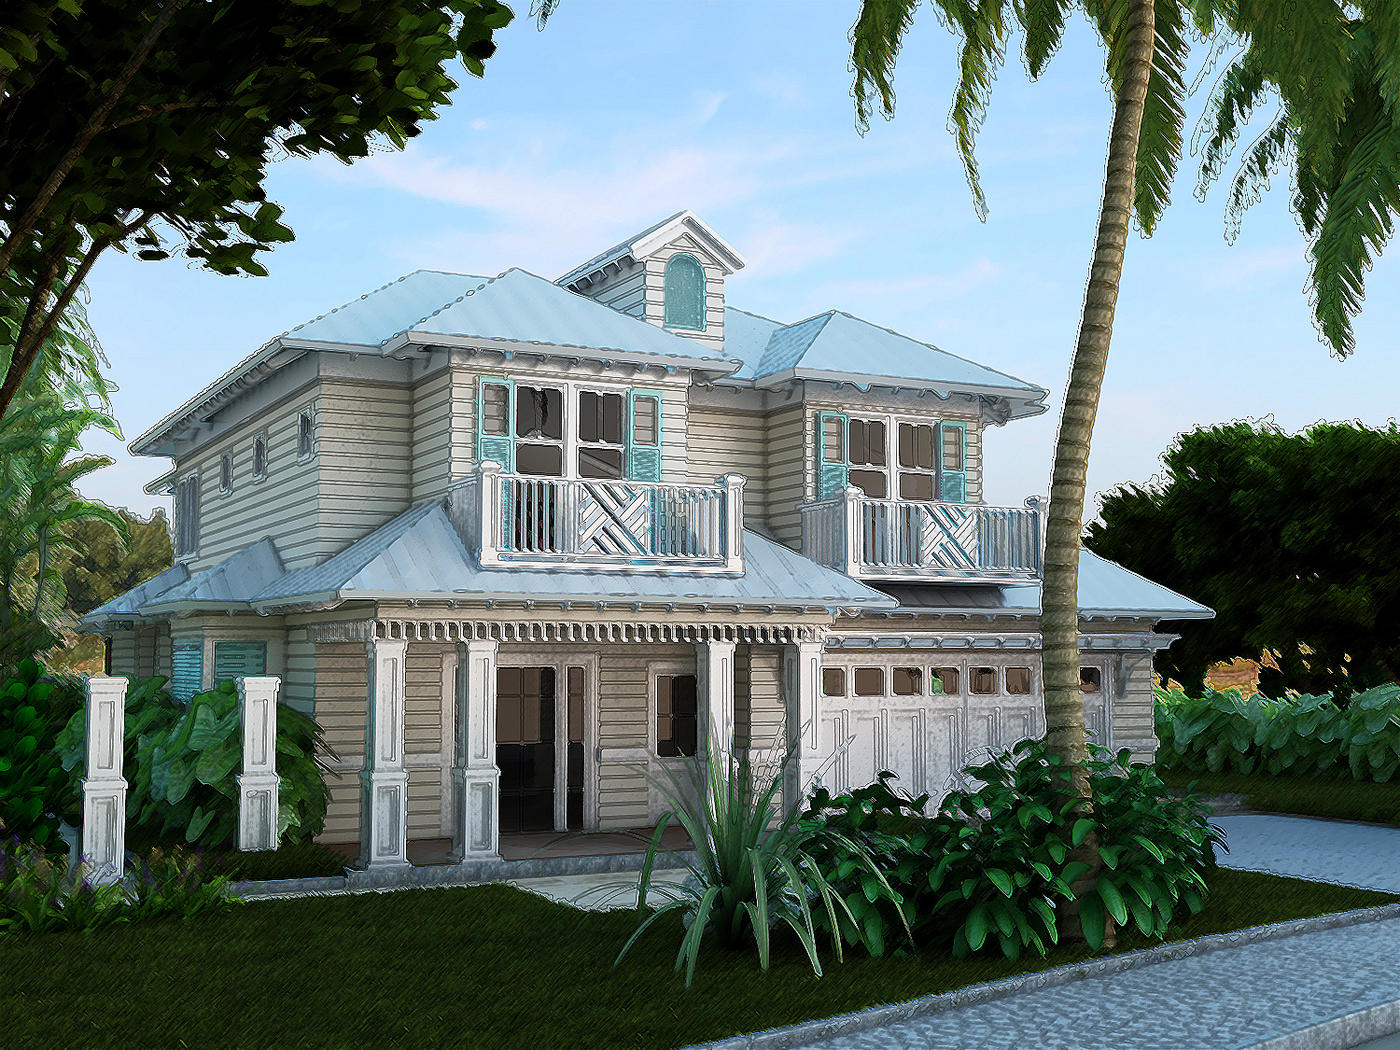 old florida style house plans ranch style log home floor plans residential house plans portfolio lotus architecture naples 266 lhp perspective 2 residential house plansphp old florida style house plans